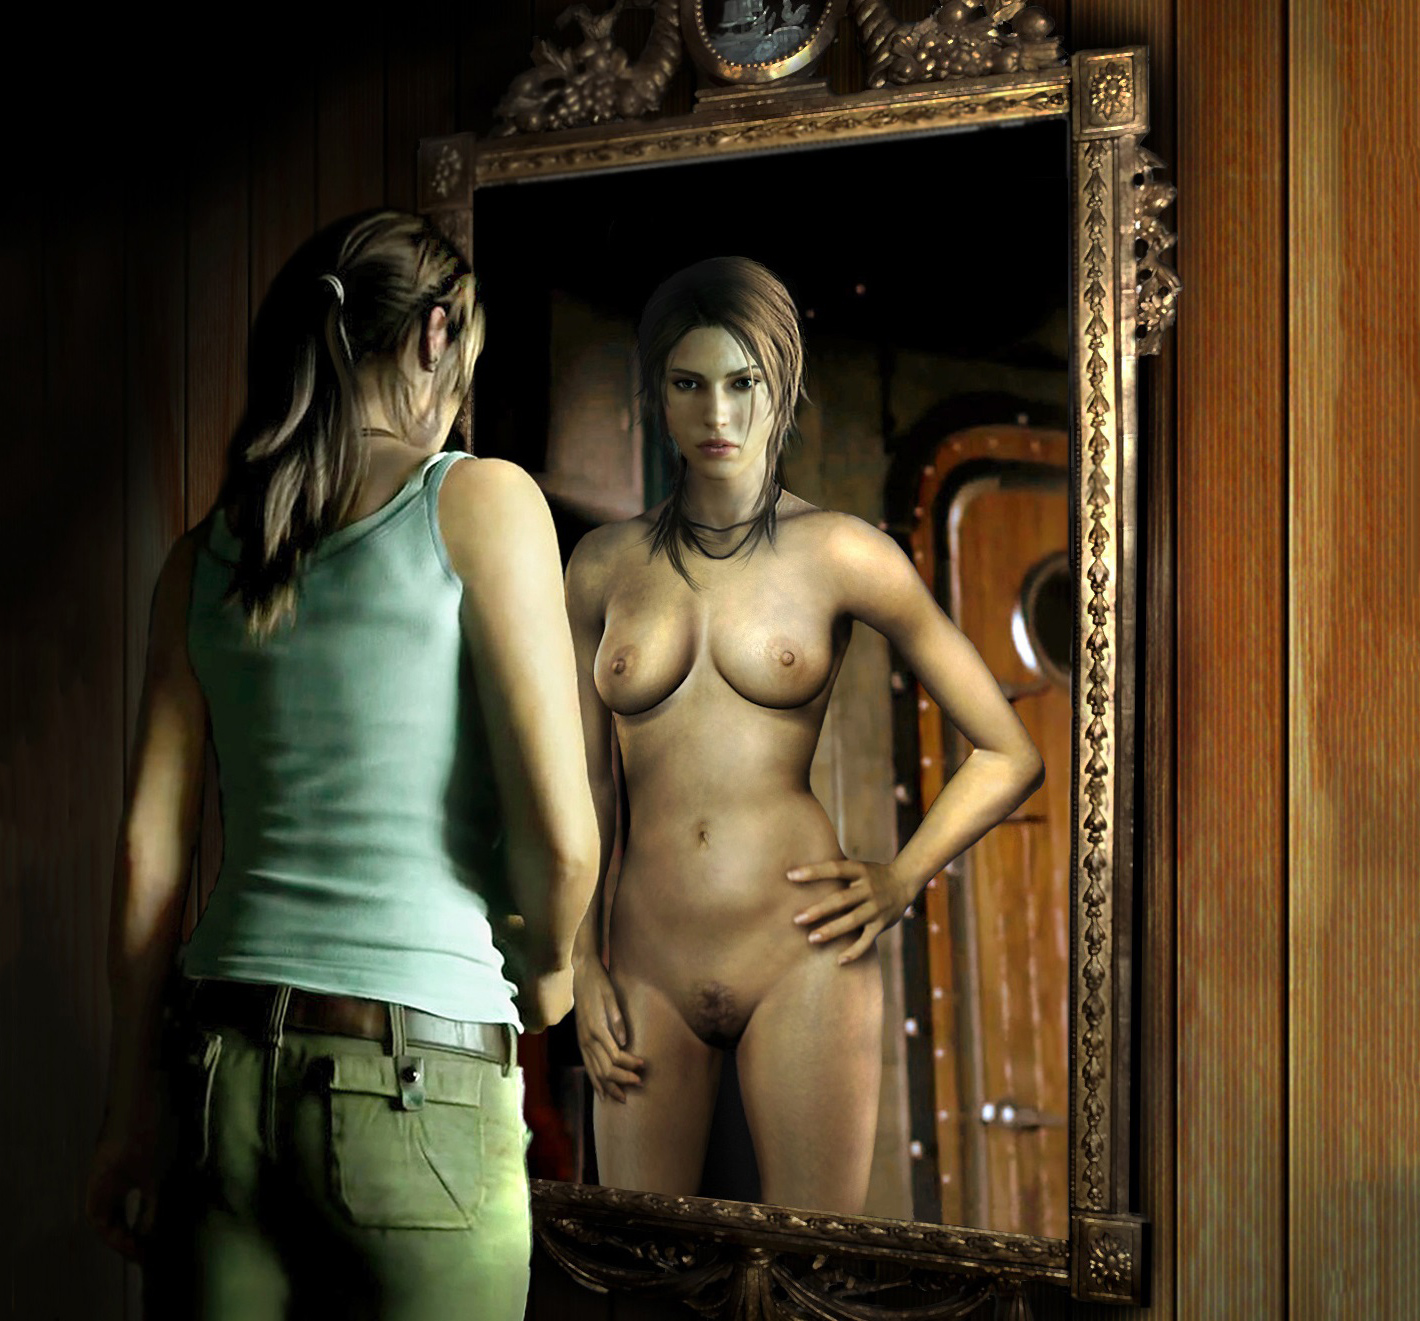 Tomb raider 2013 sex patch naked movies